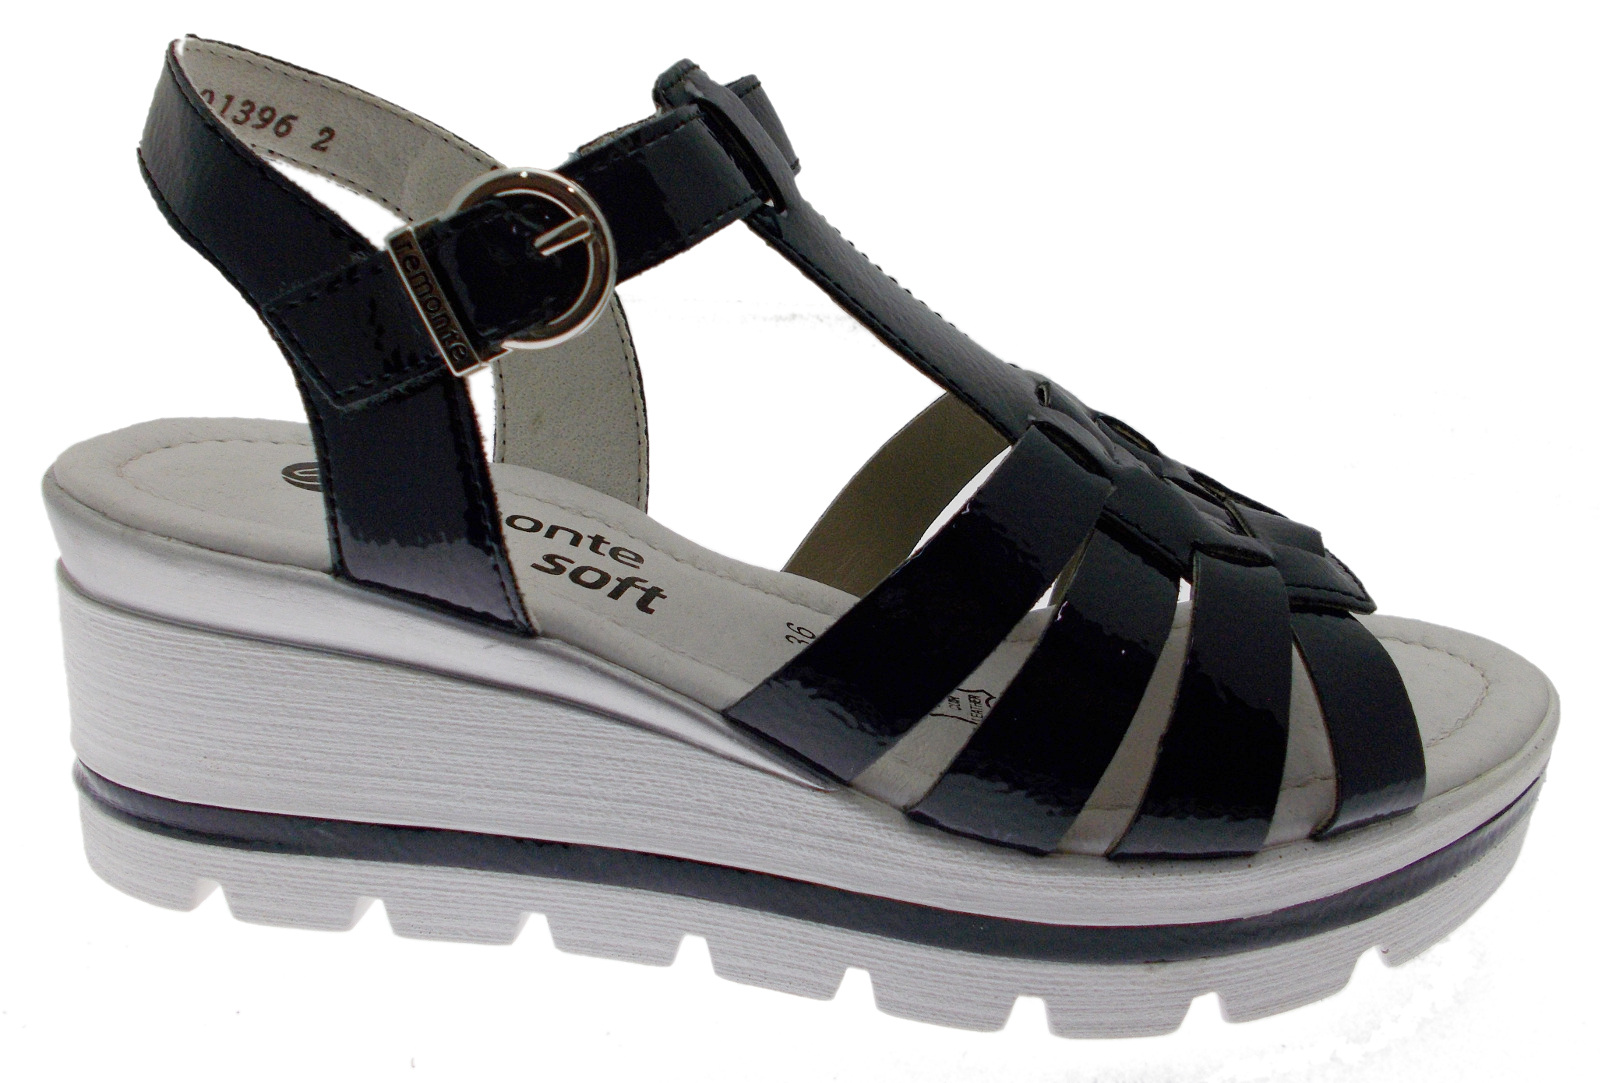 D1540-14 woman woman woman sandal bluee patent leather wedge soft memory Remonte d7a2ad